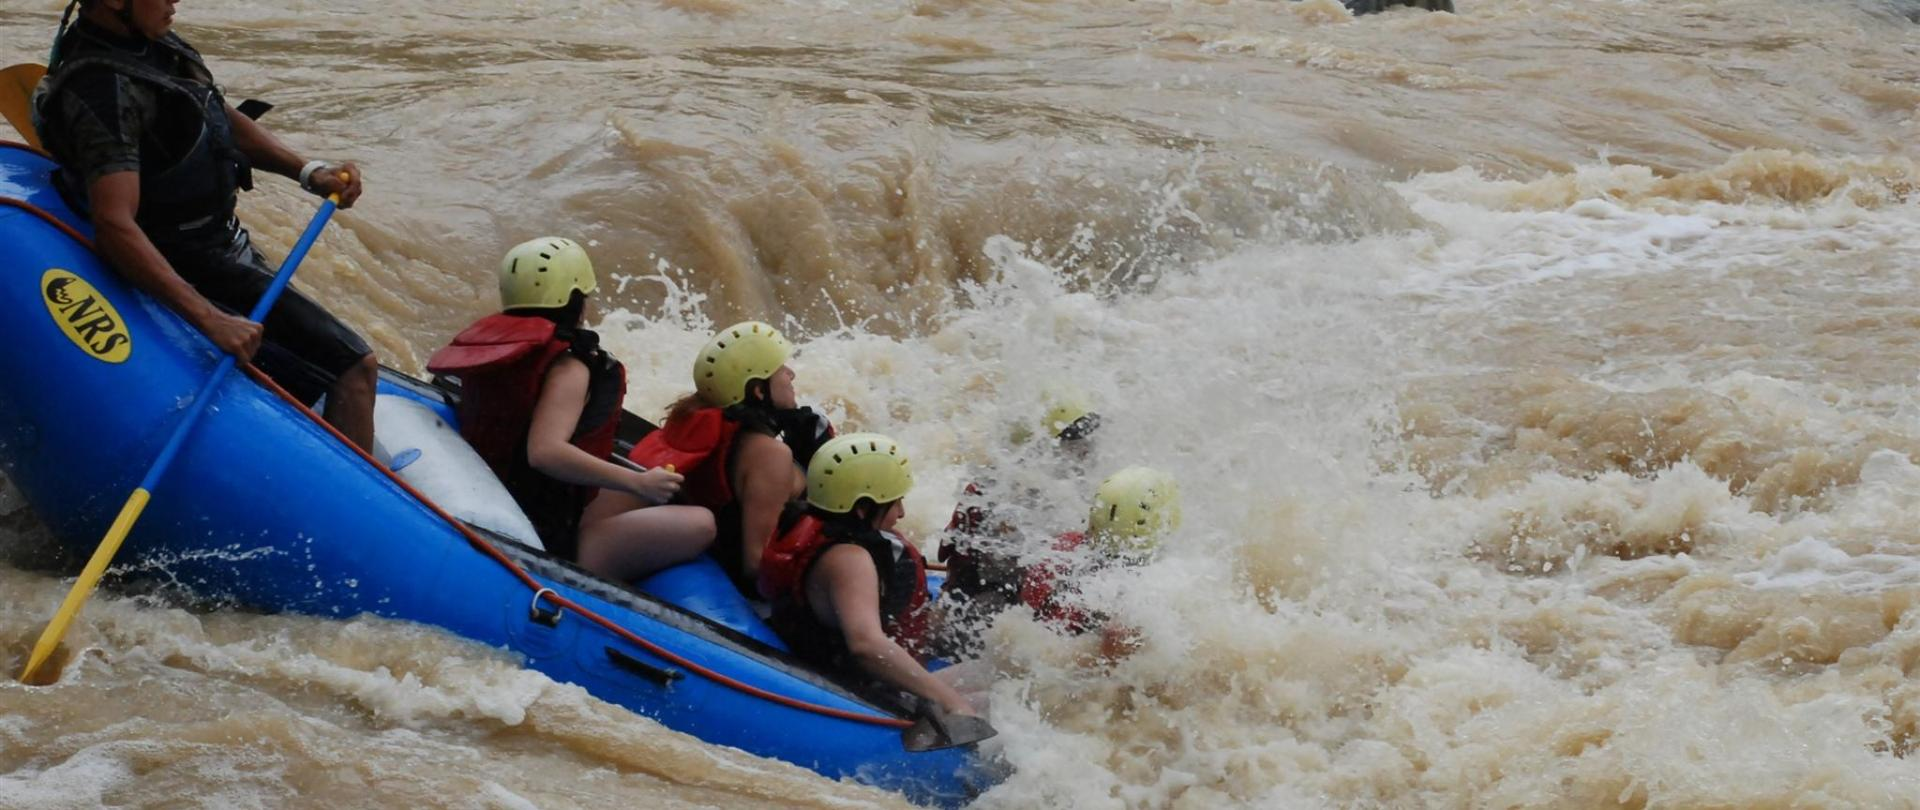 whitewater-rafting-300-dpi.jpg